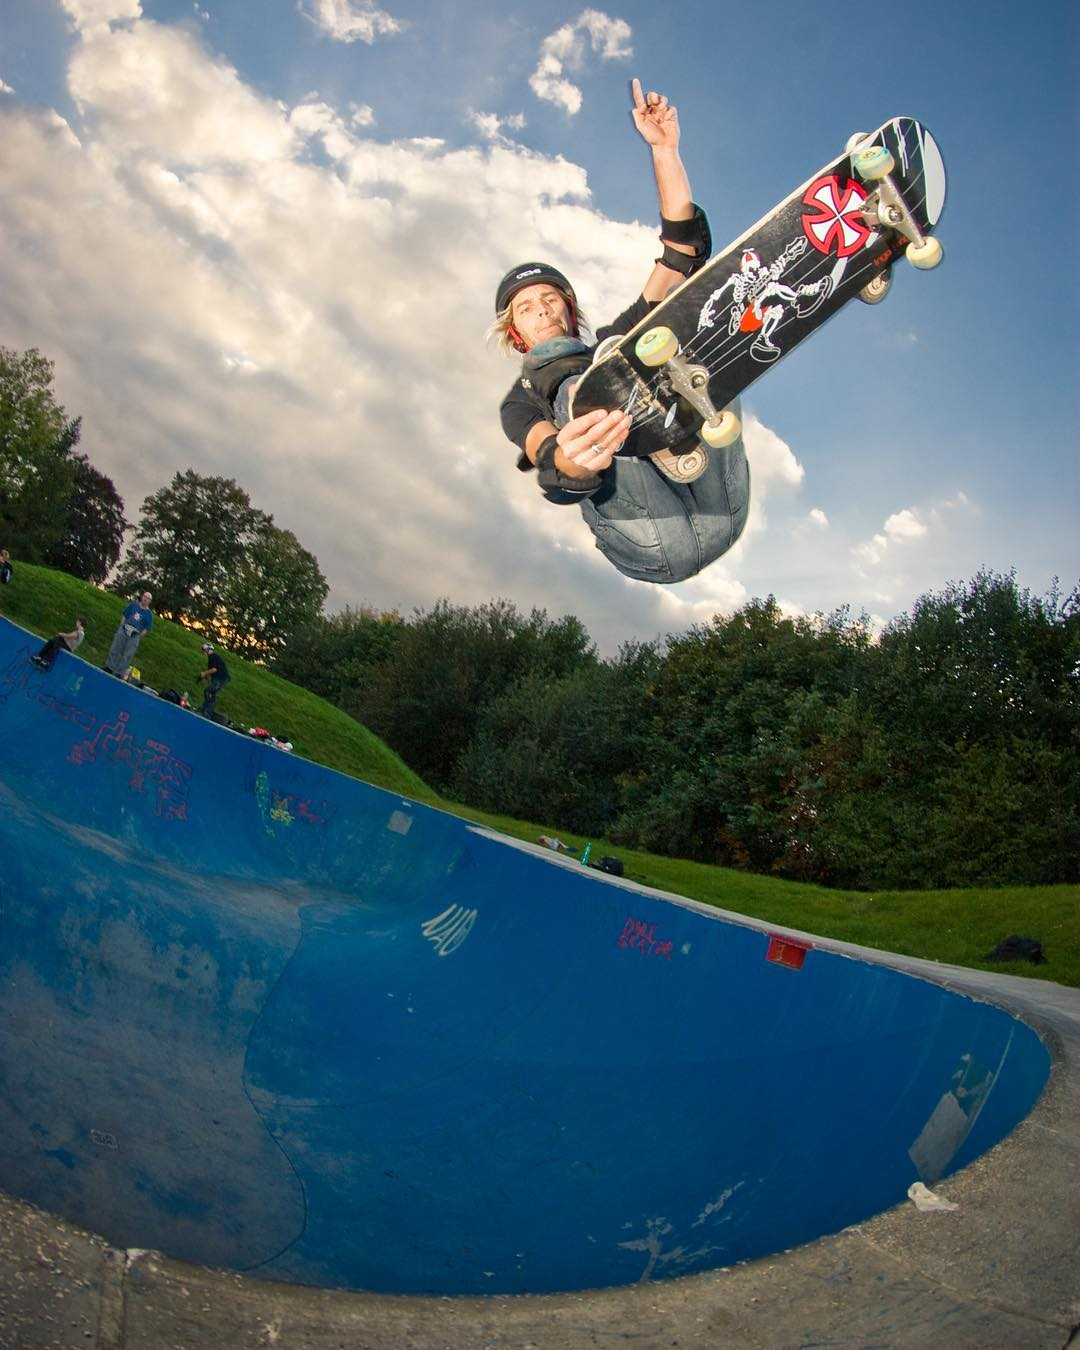 #throwbackthursday Ingo Fröbrich tailgrab to fakie in the deepend of the Mickey Mouse Pool in Hagen. #skateboarding #pool #bowl #concrete #pavelskates #bailgun #gerdriegerphotography